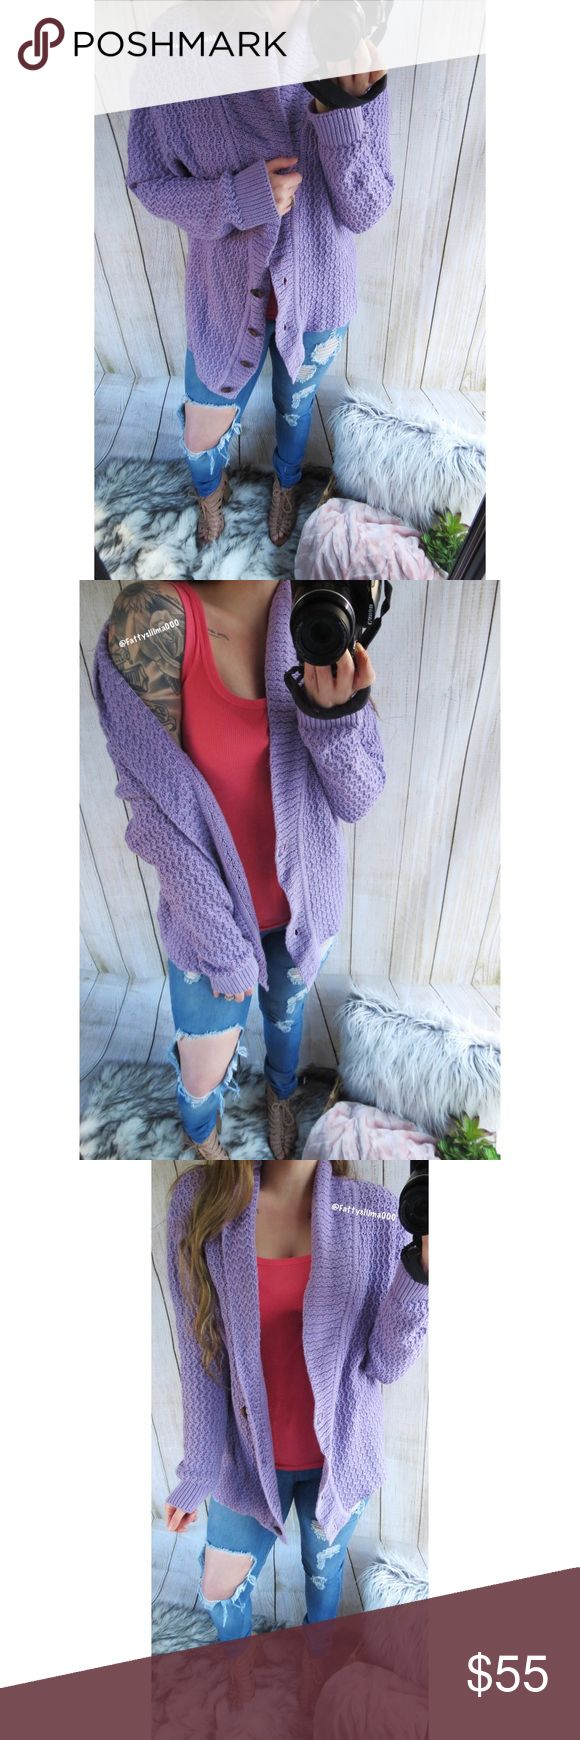 Lilac purple spring feels knitted cardigan 🌿 Stunning lilac slouchy knitted cardigan. Get ready to take on the spring transitioning months by adding this gorgeous piece to your wardrobe! Cardigan features a stunning lilac purple color, beautiful mid weight knitting, button up closure, and has a longer length giving it great bum coverage. This piece is sure to become a favorite closet go to as it has all the spring feels! Will fit size large best with fit seen on model. In excellent…